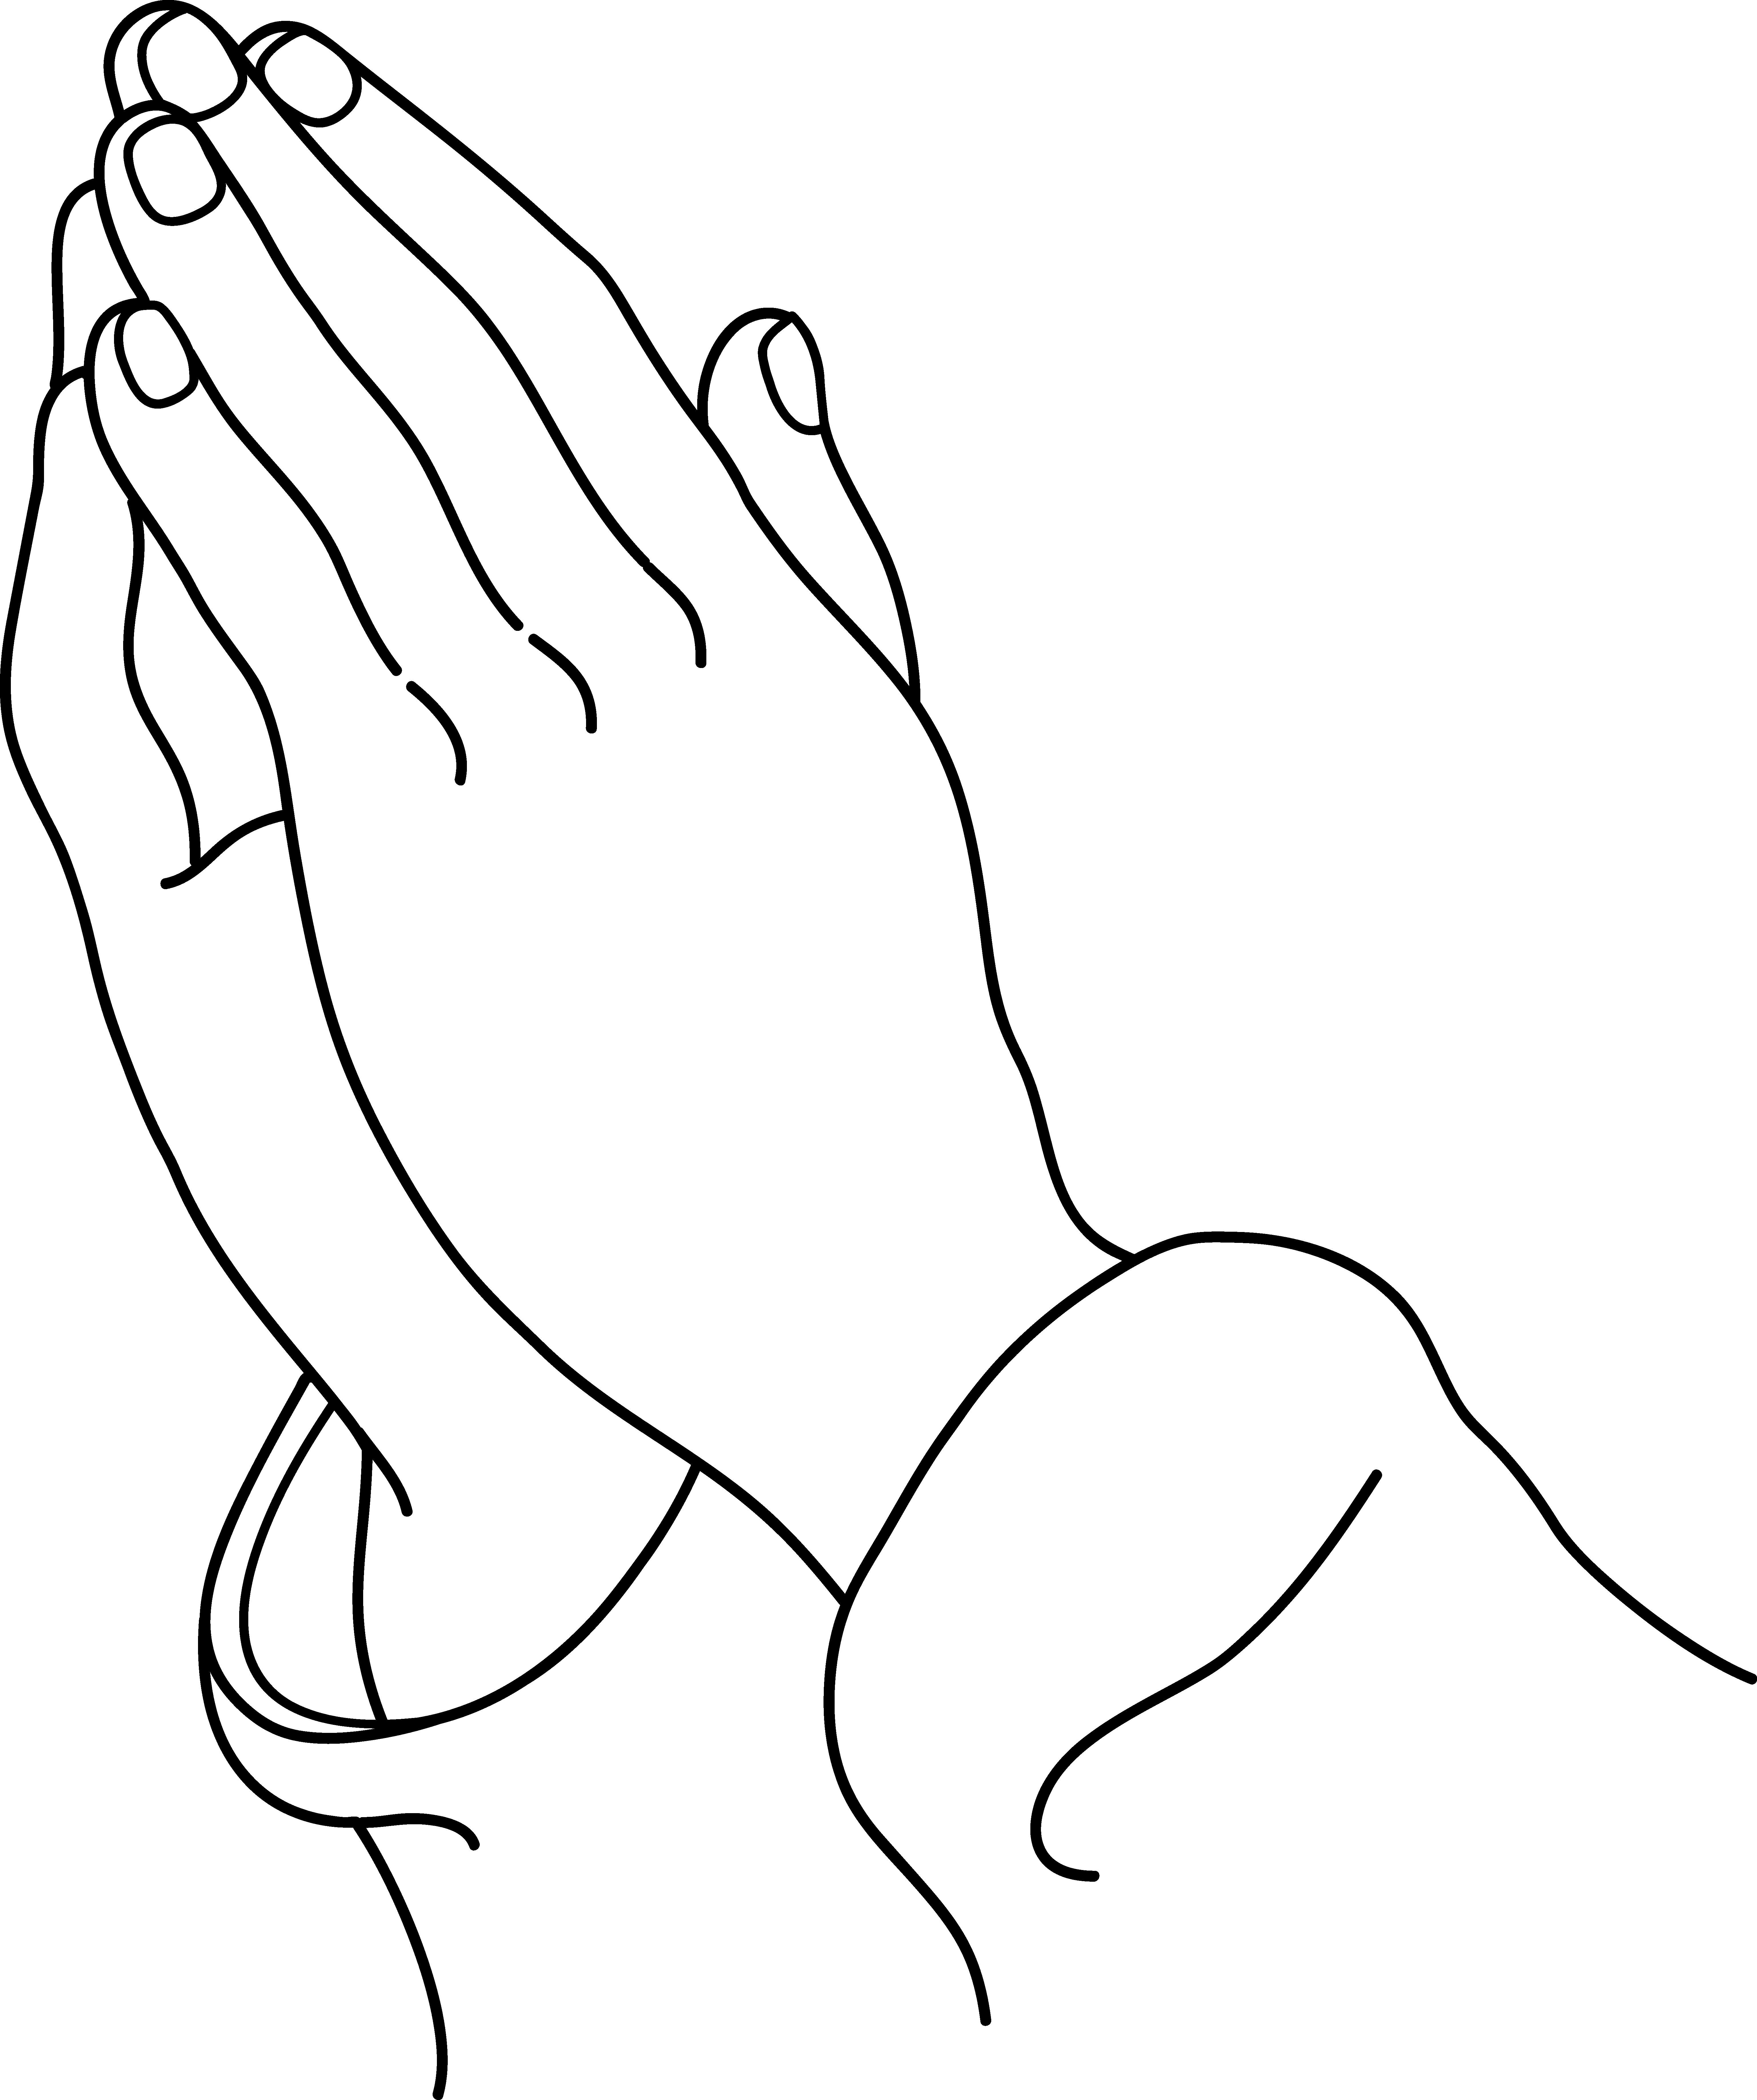 Pray Clipart - Cliparts.co